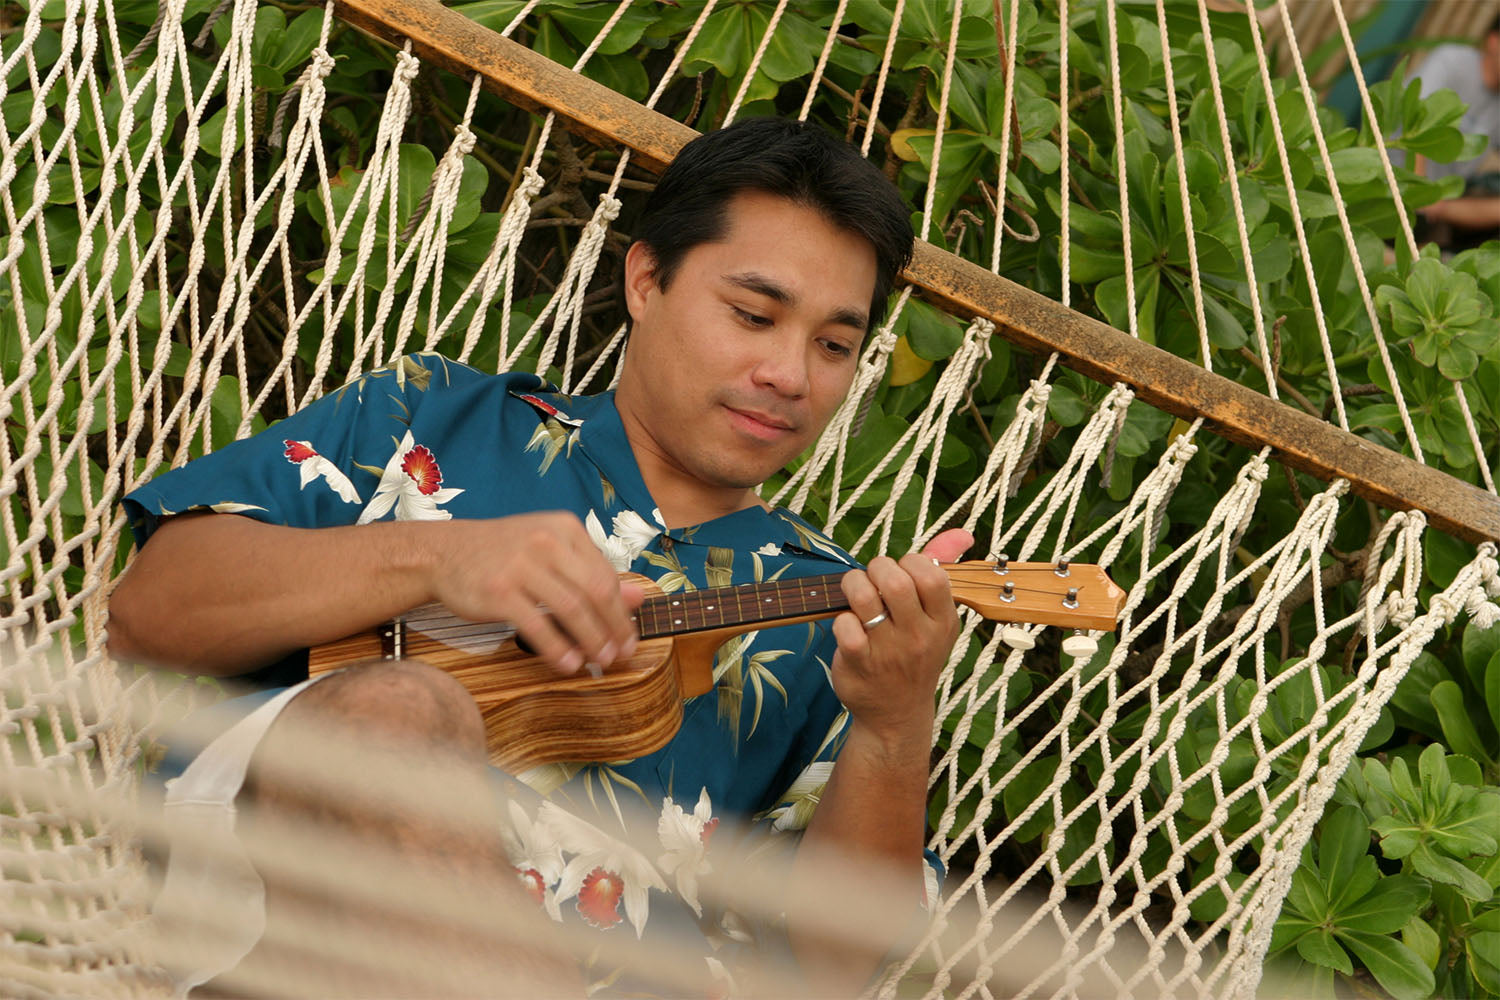 relaxing in an Aloha shirt with an ukulele